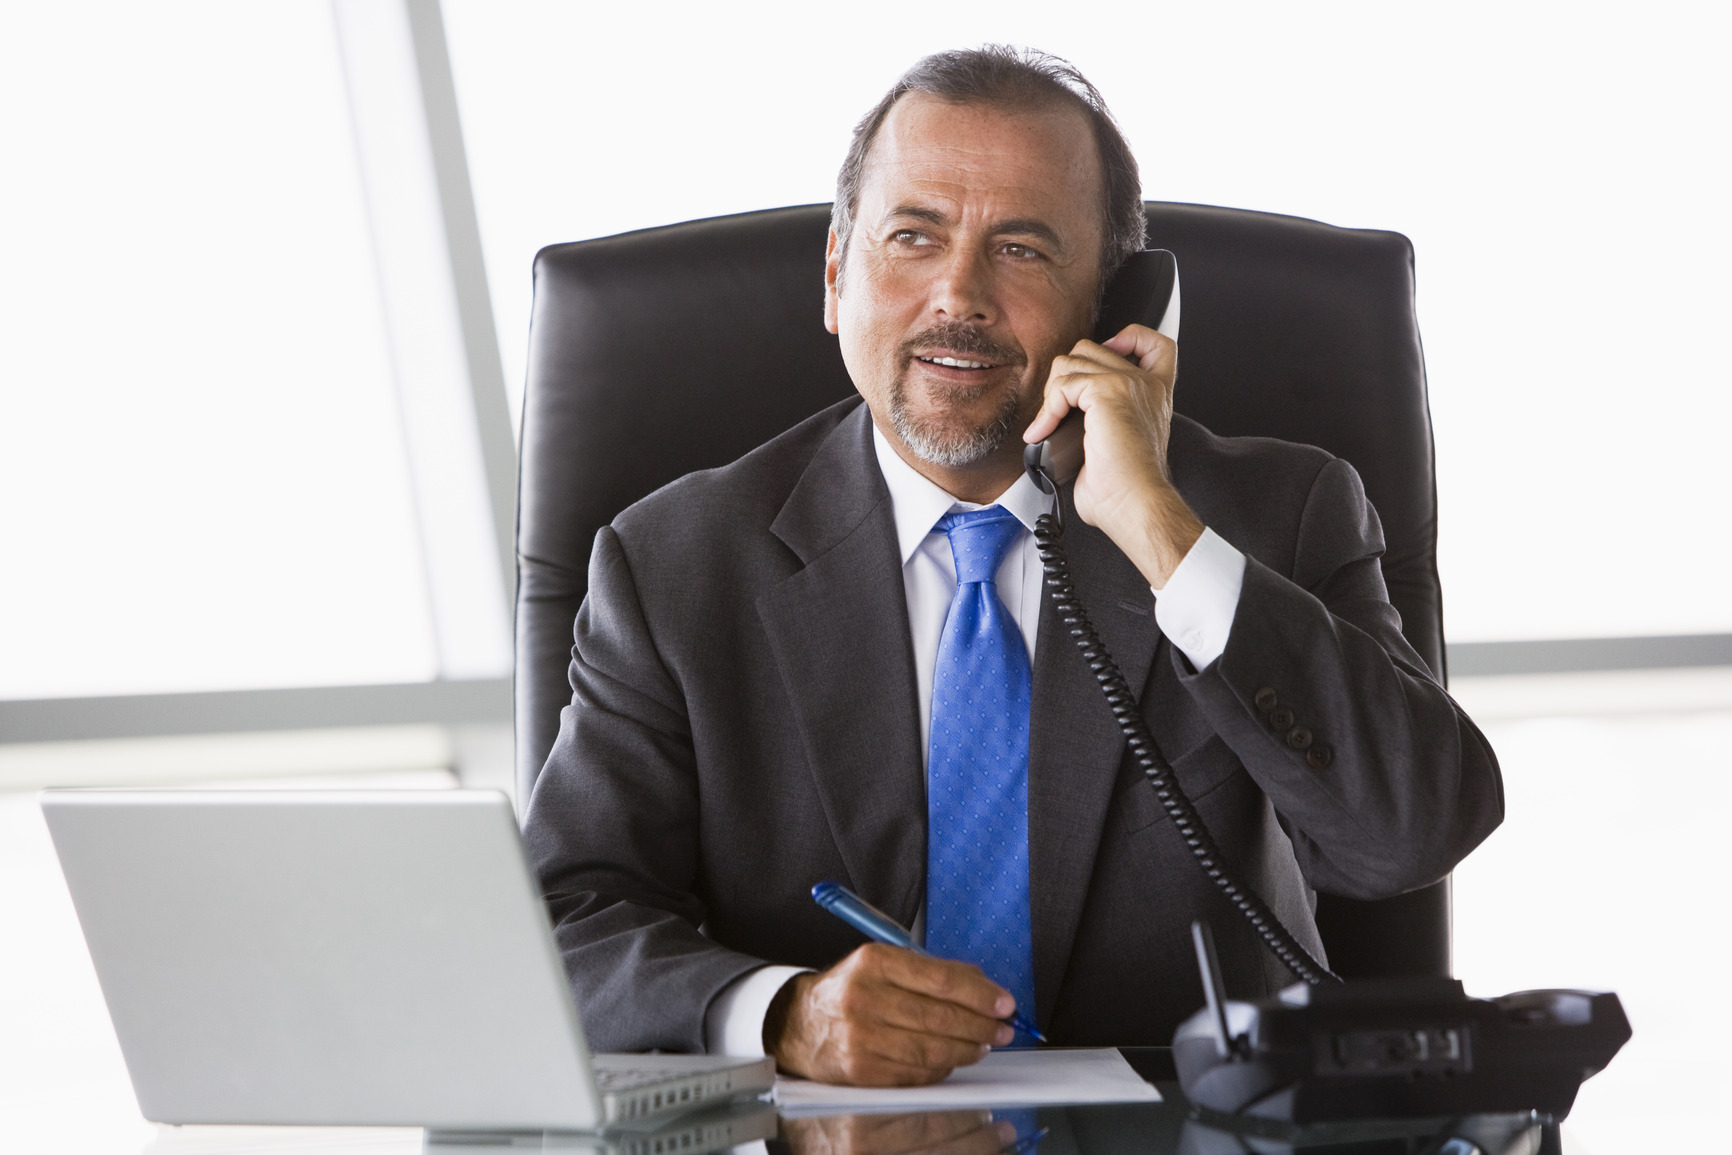 5 Ways To Win With Your Next Introductory Sales Call